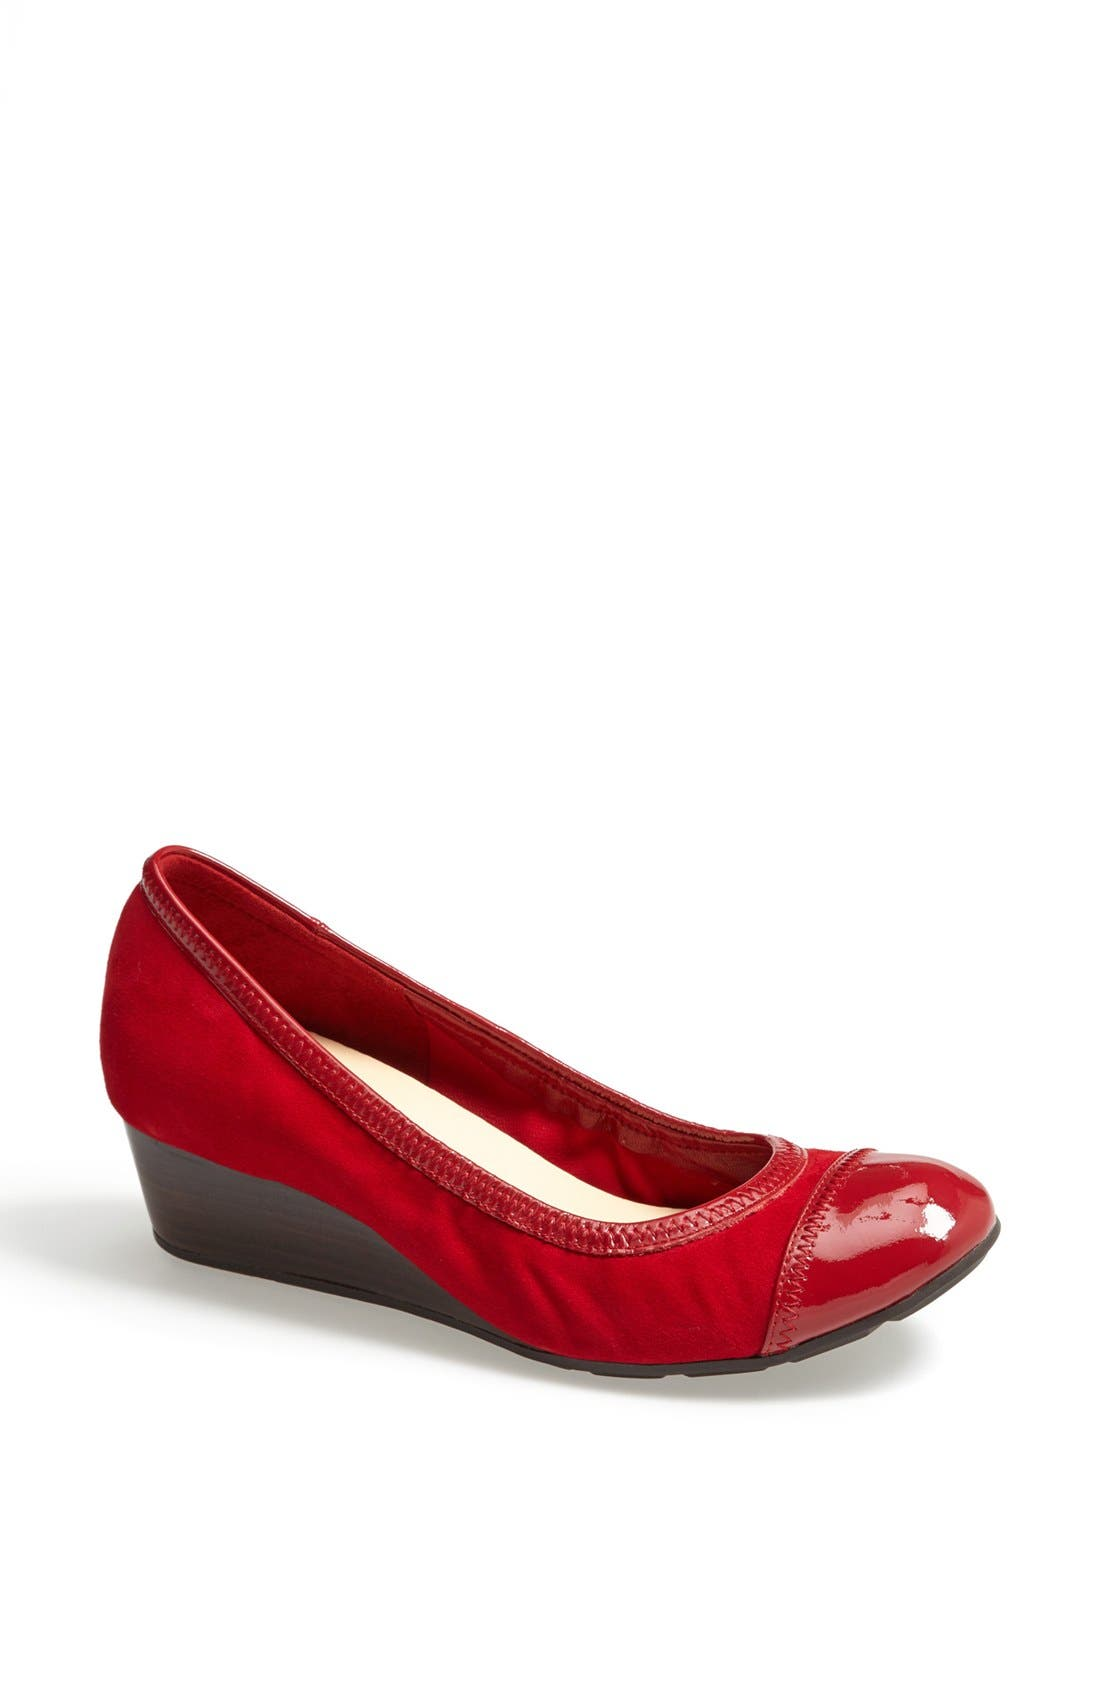 Alternate Image 1 Selected - Cole Haan 'Milly' Wedge Pump